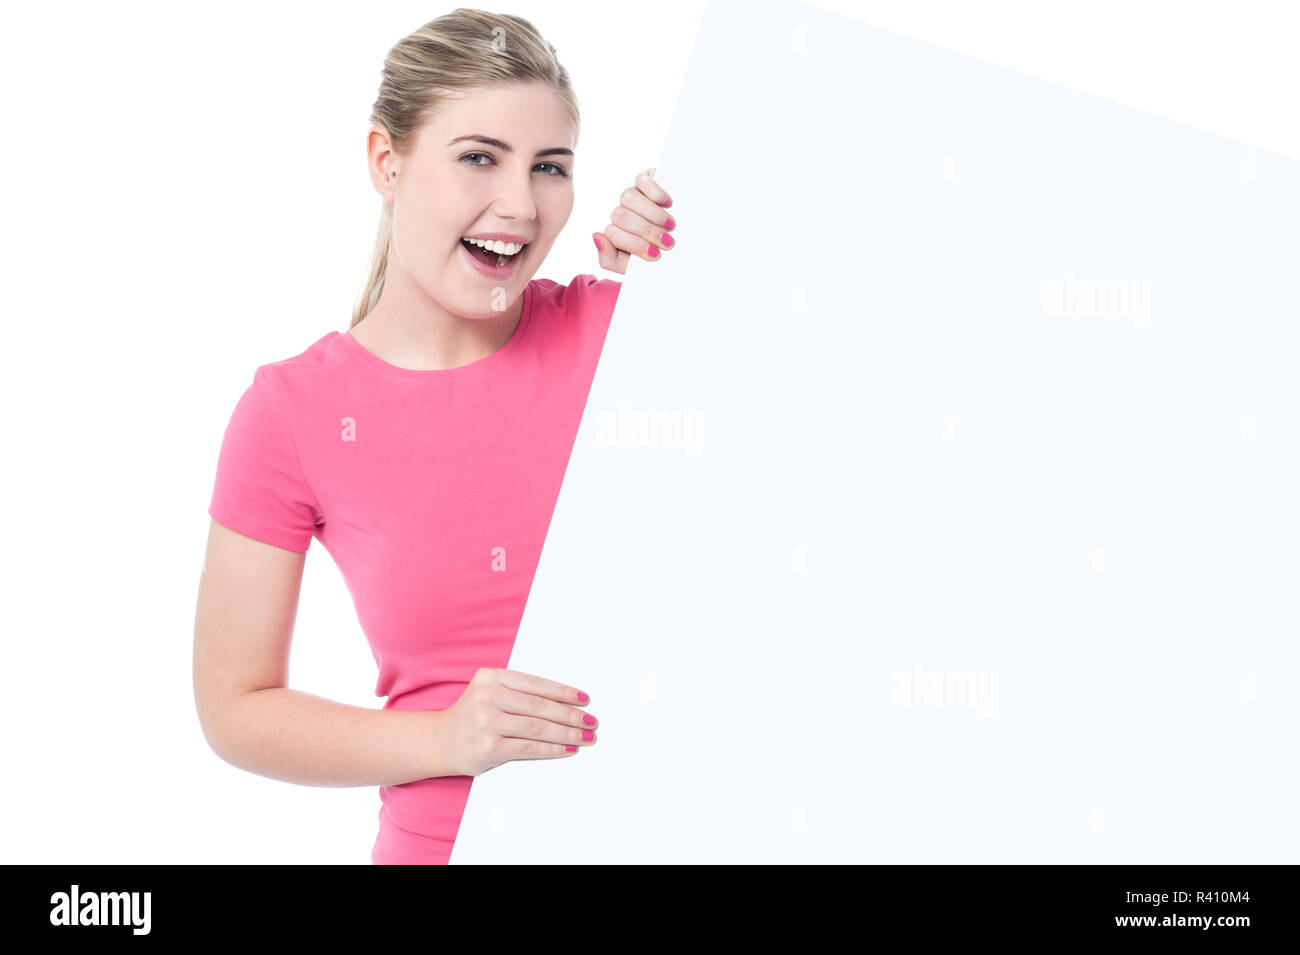 Place your ads here ! - Stock Image